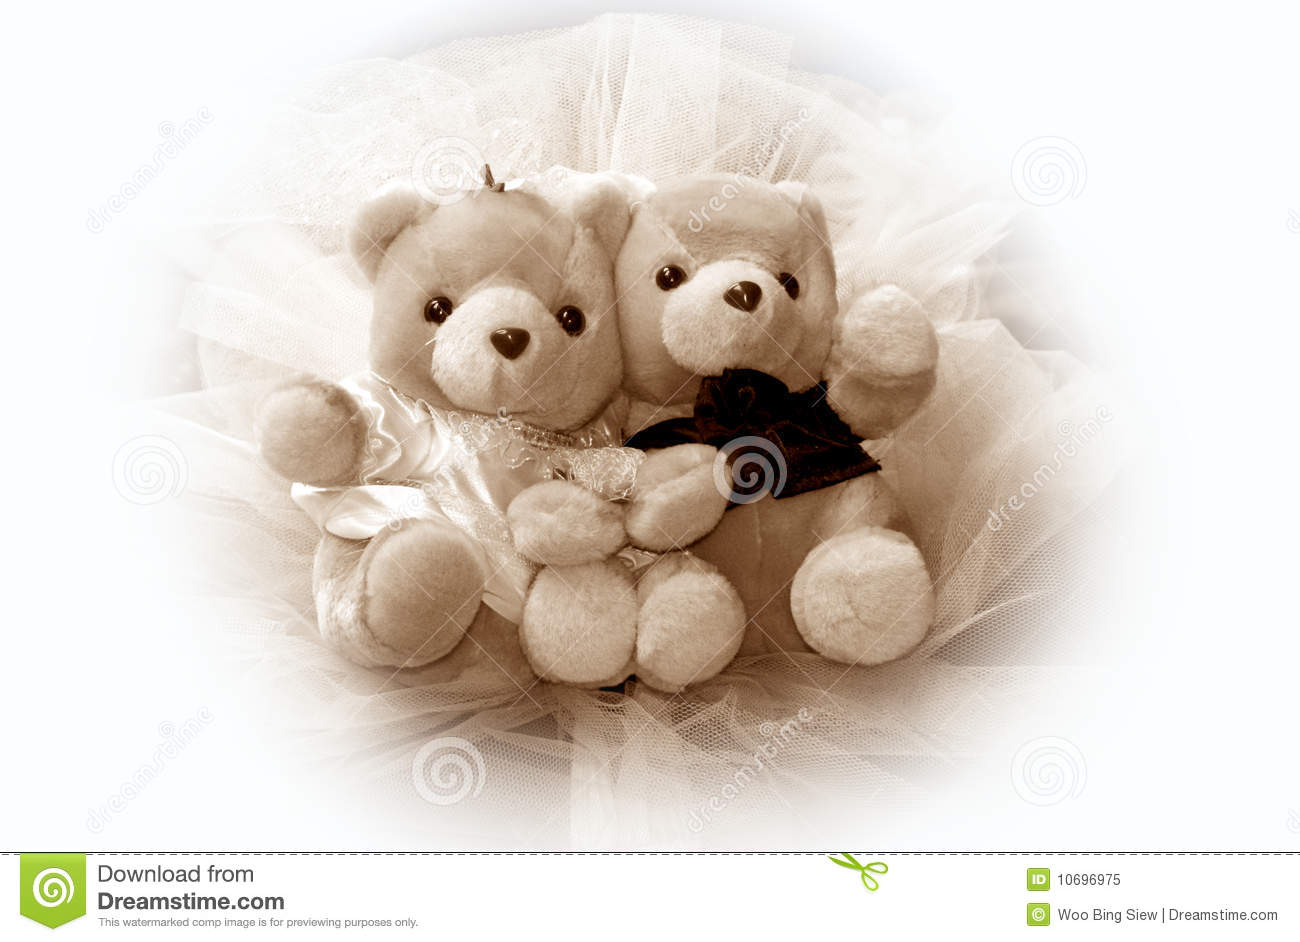 Wedding Teddy Bears Stock Photos, Images, & Pictures - 393 Images